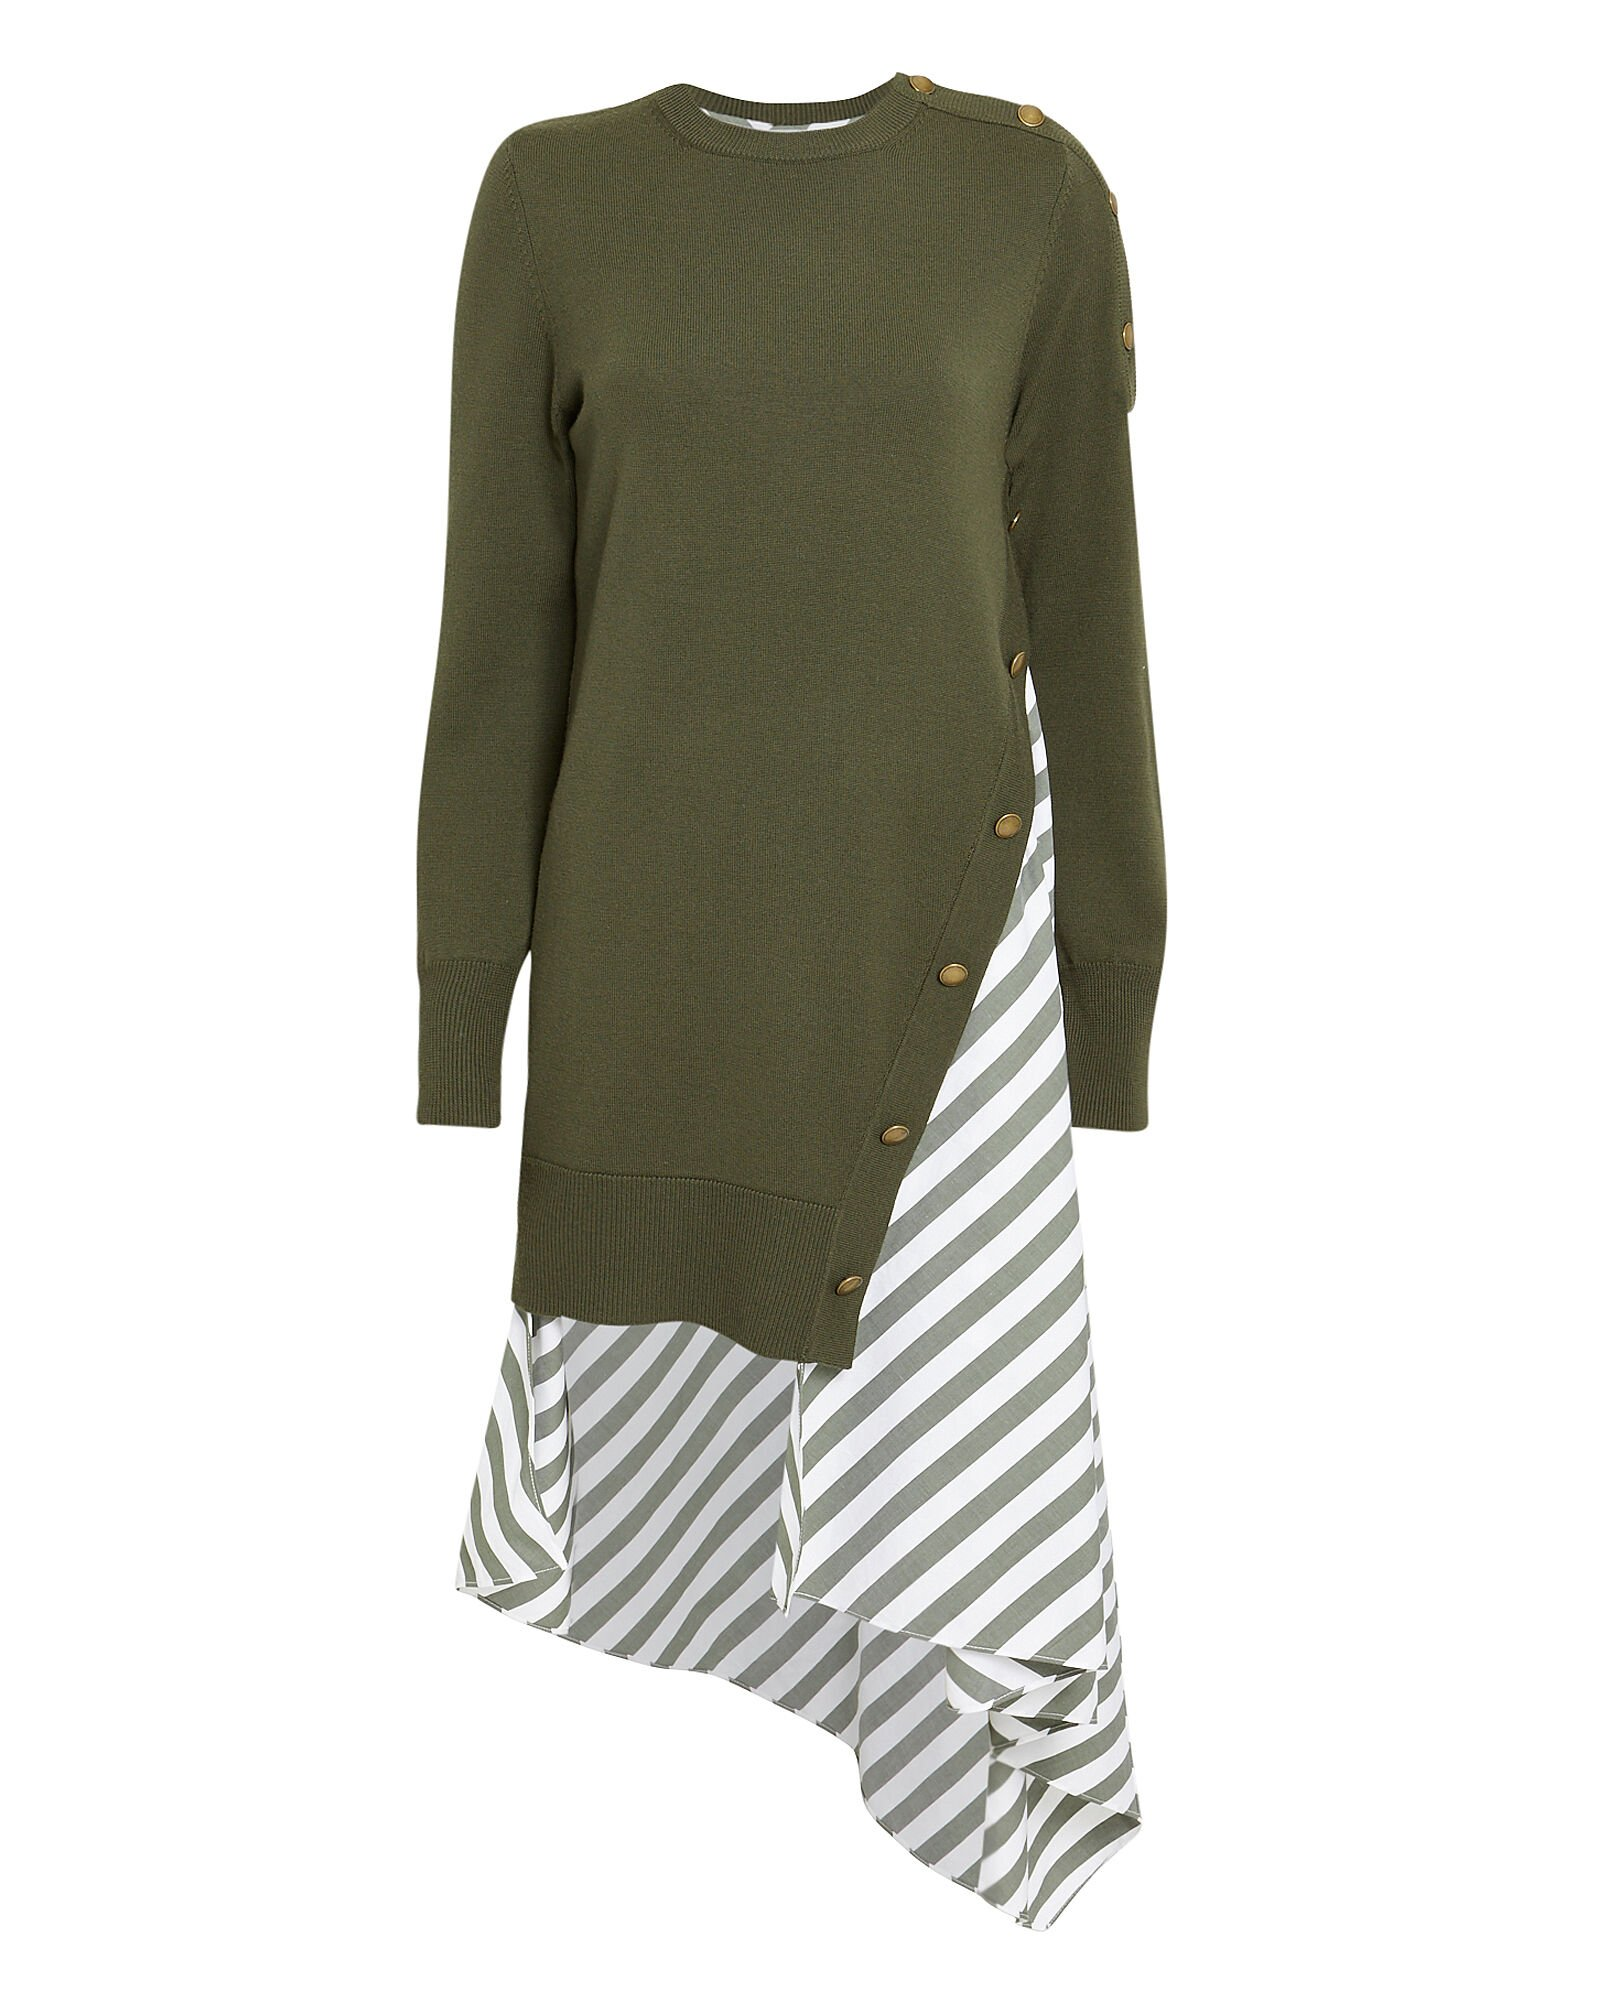 Olive Striped Poplin Contrast Knit Dress, OLIVE/ARMY, hi-res